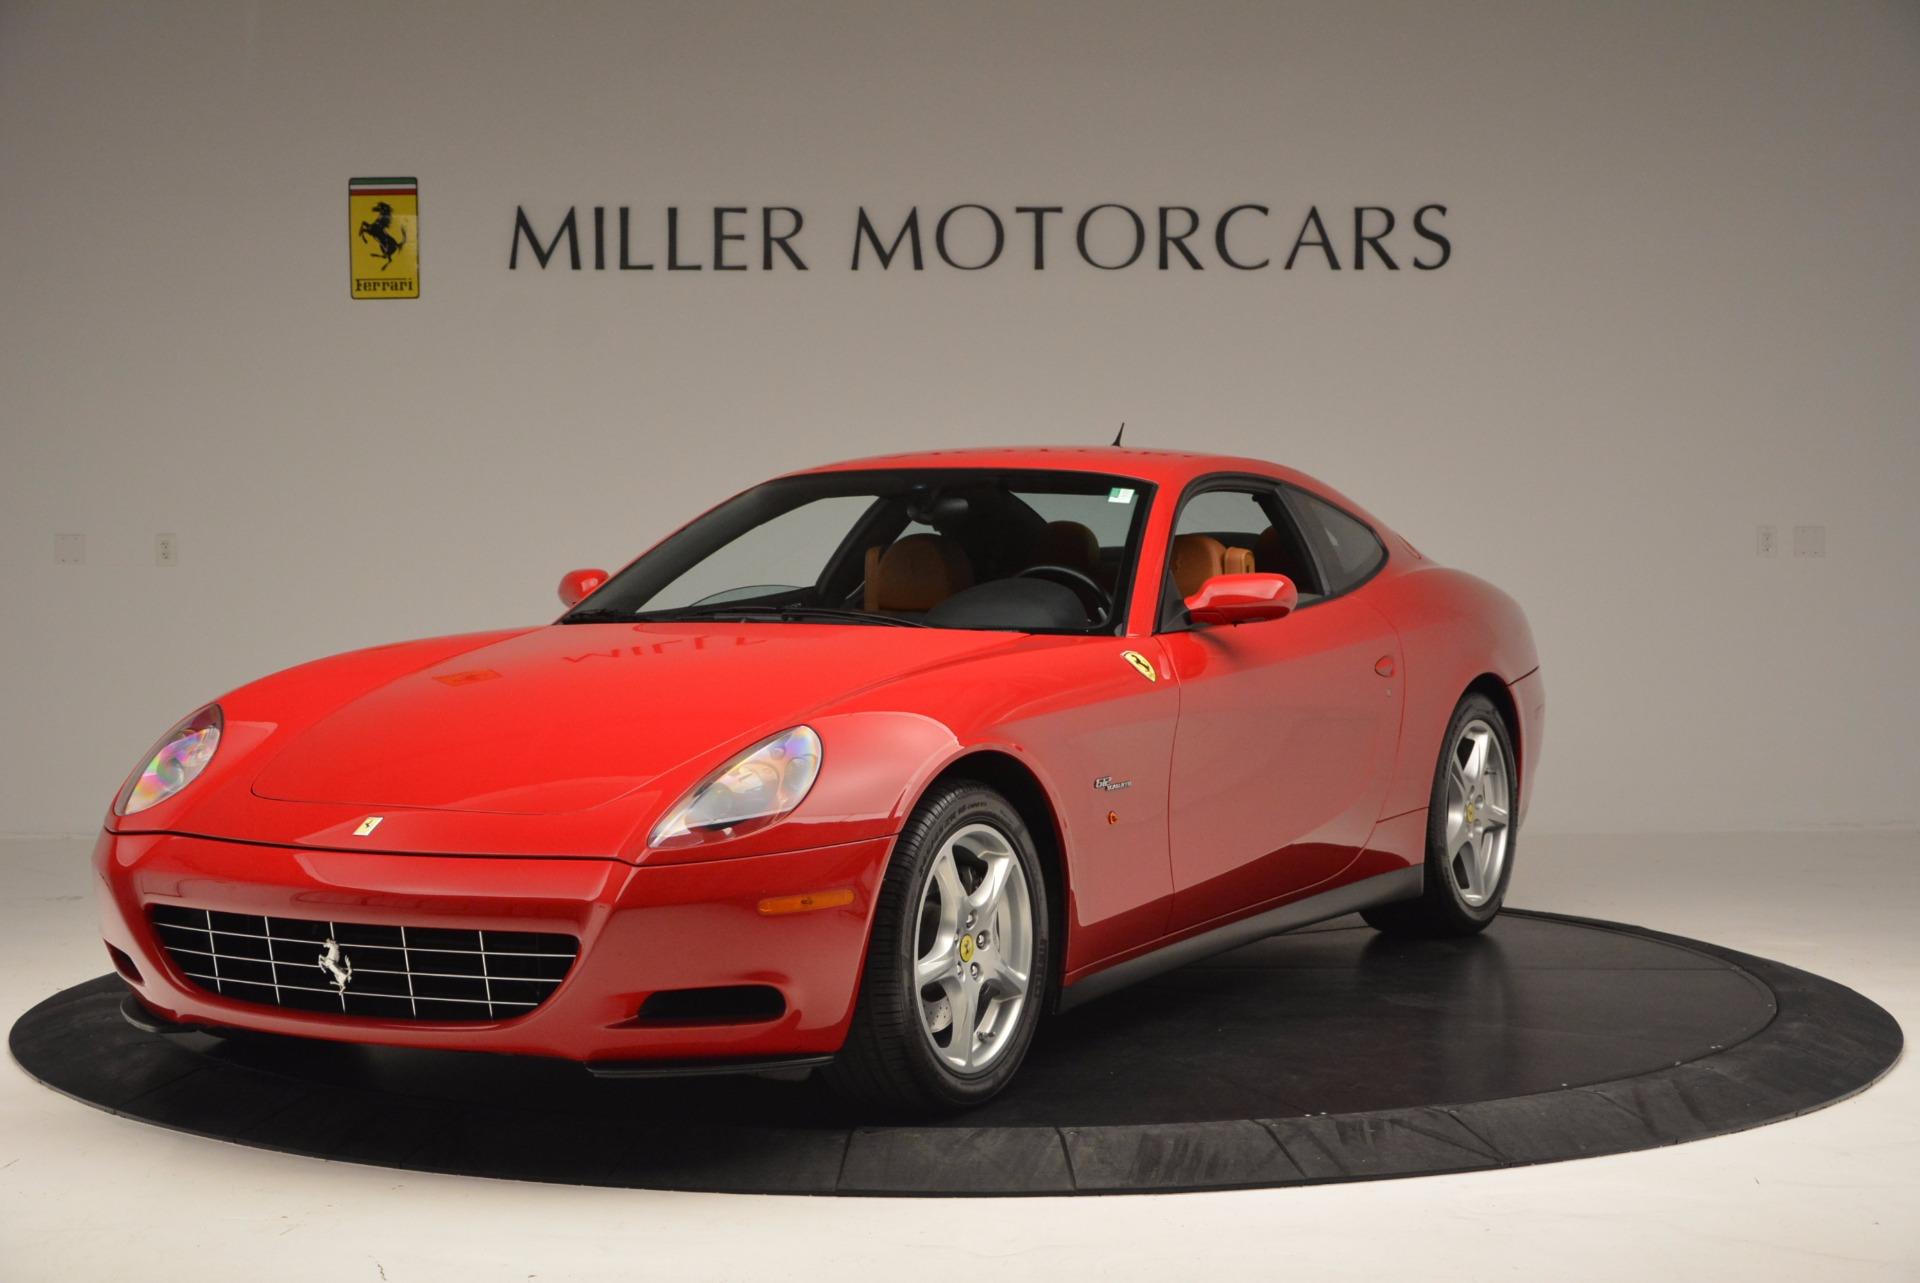 Used 2005 Ferrari 612 Scaglietti for sale Sold at Pagani of Greenwich in Greenwich CT 06830 1